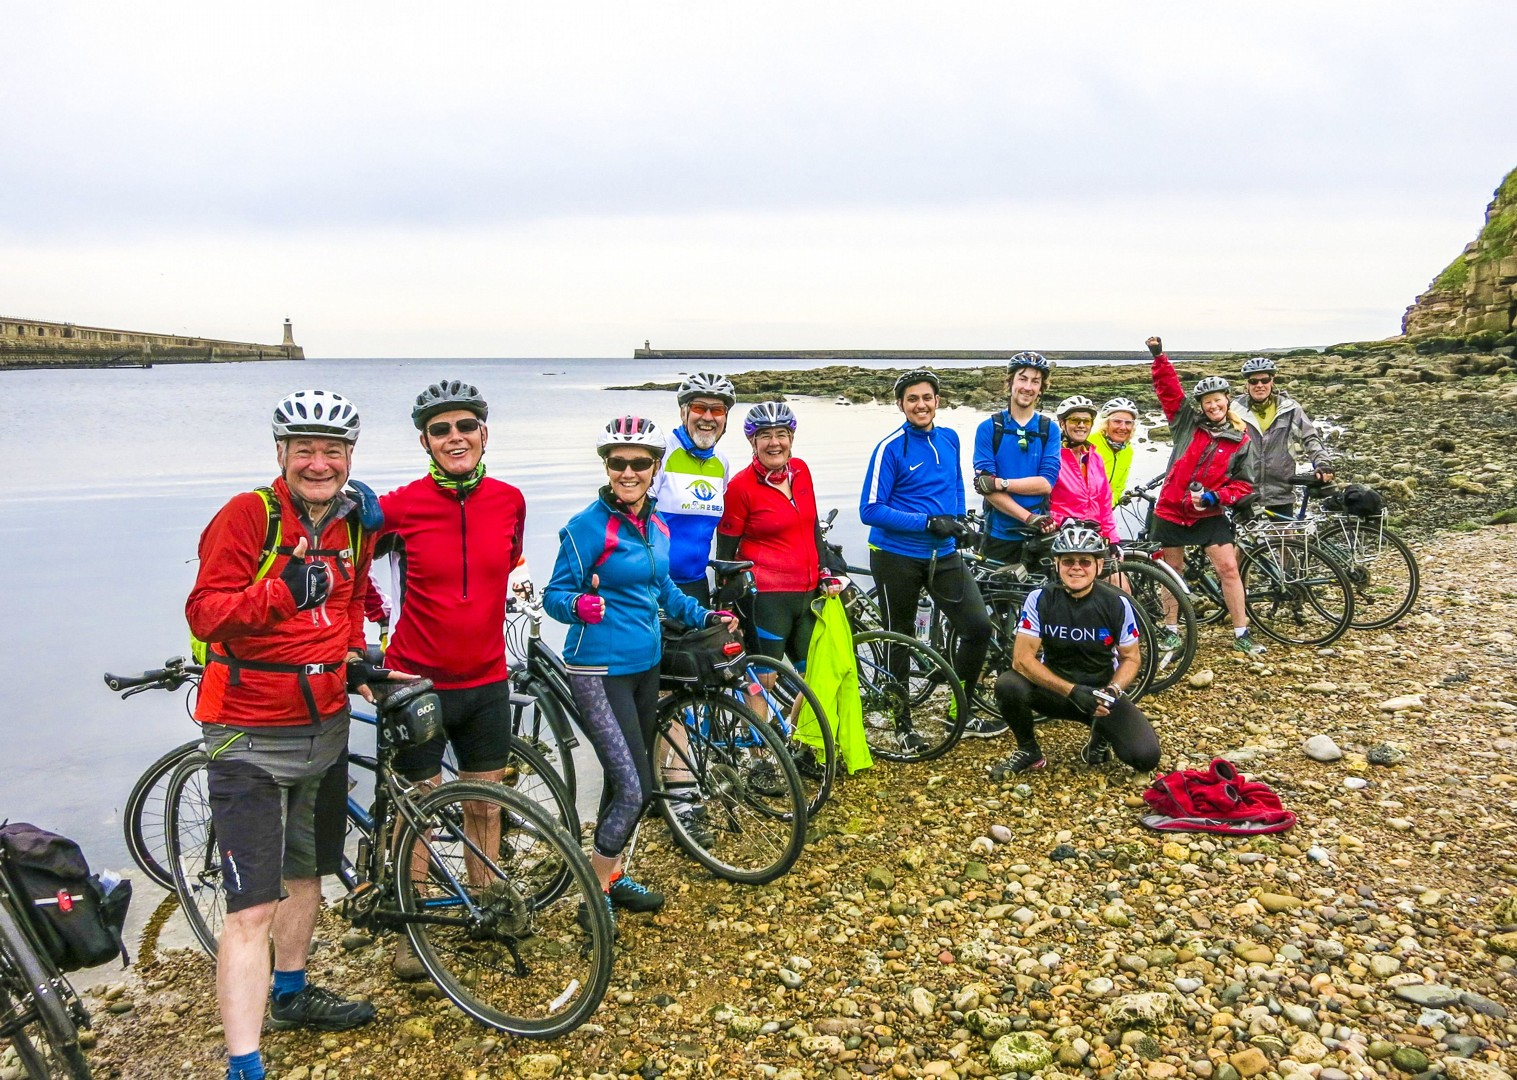 self-guided-big-or-small-group-whitehaven-to-newcastle-cycling.jpg - UK - C2C - Coast to Coast 3 Days Cycling - Self-Guided Leisure Cycling Holiday - Leisure Cycling